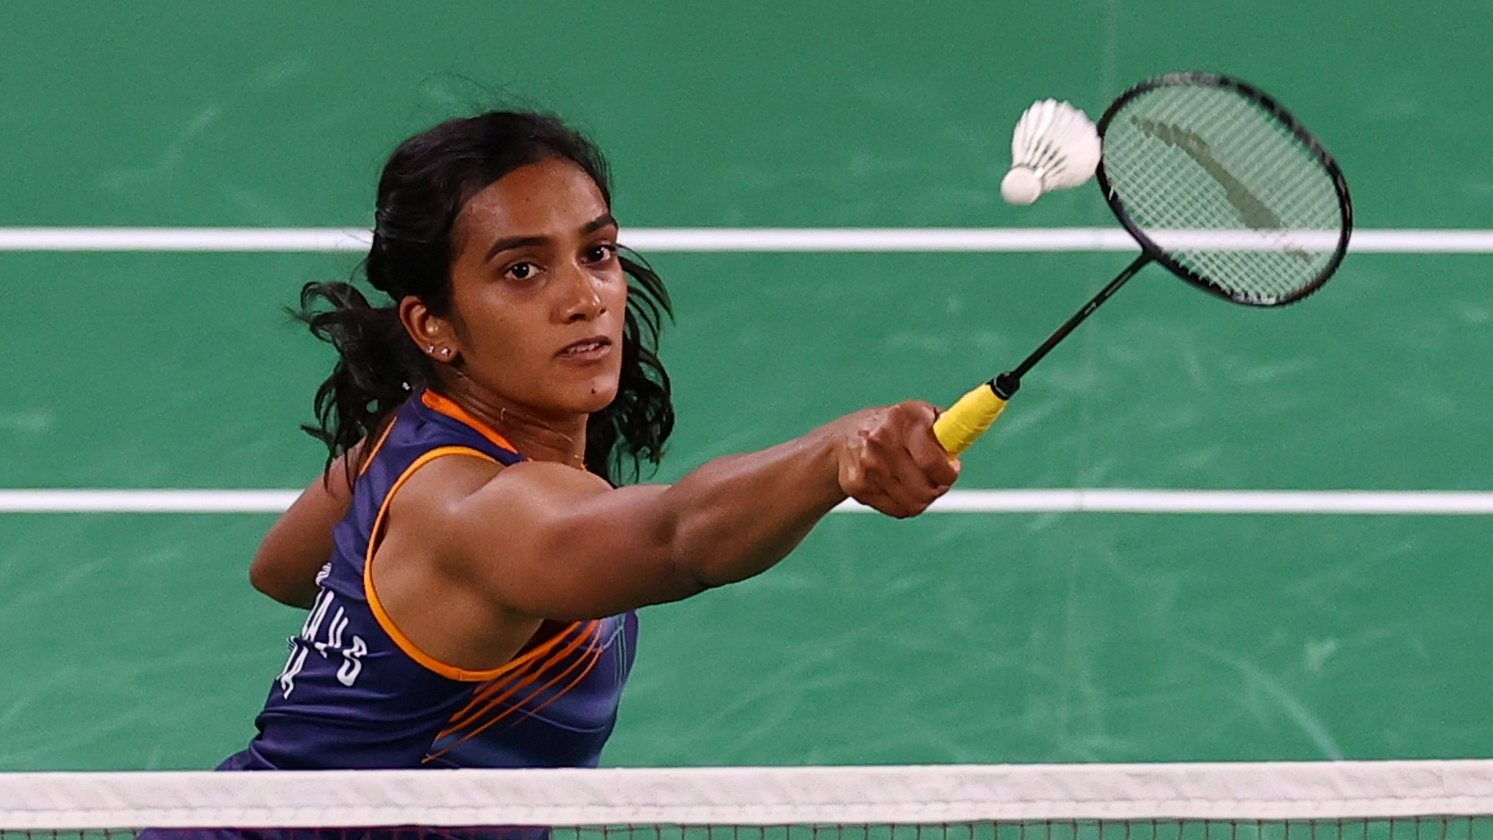 PV Sindhu wins her opening match, by defeating Polikarpova with ease!